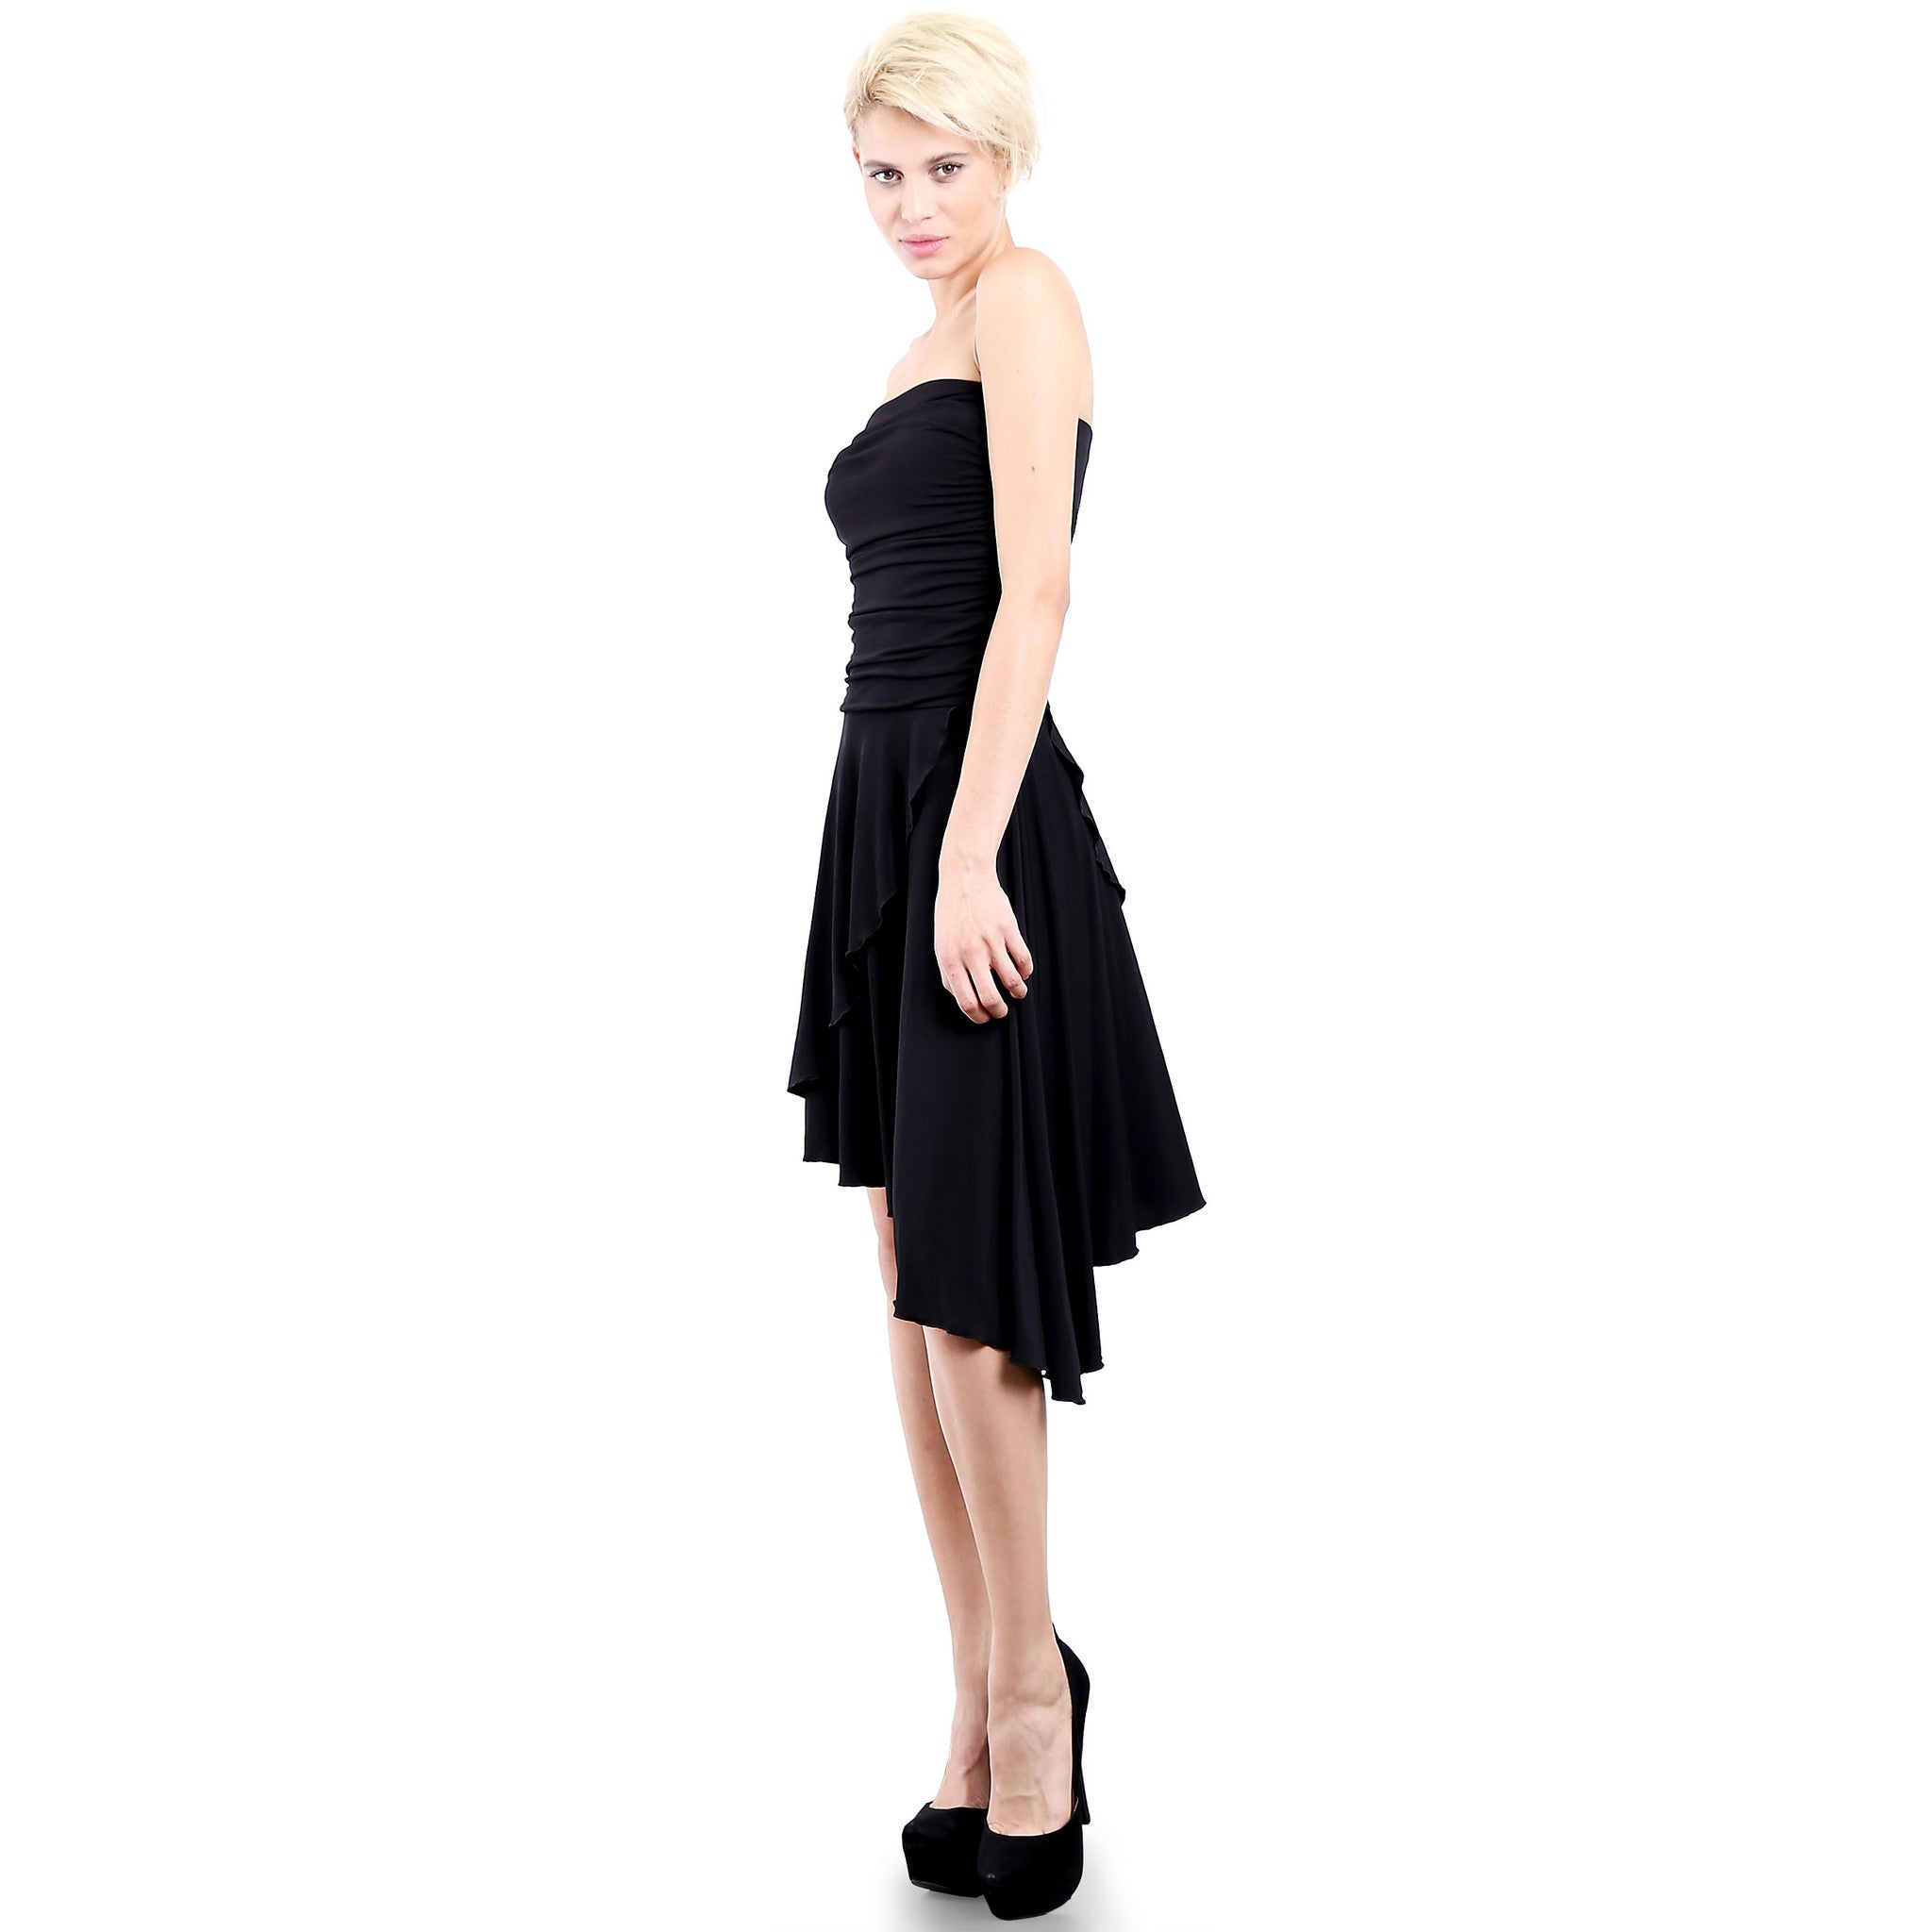 9c34991323 ... Evanese Women s Cocktail Party Strapless Tube Dress with Asymmetrical  Skirt M